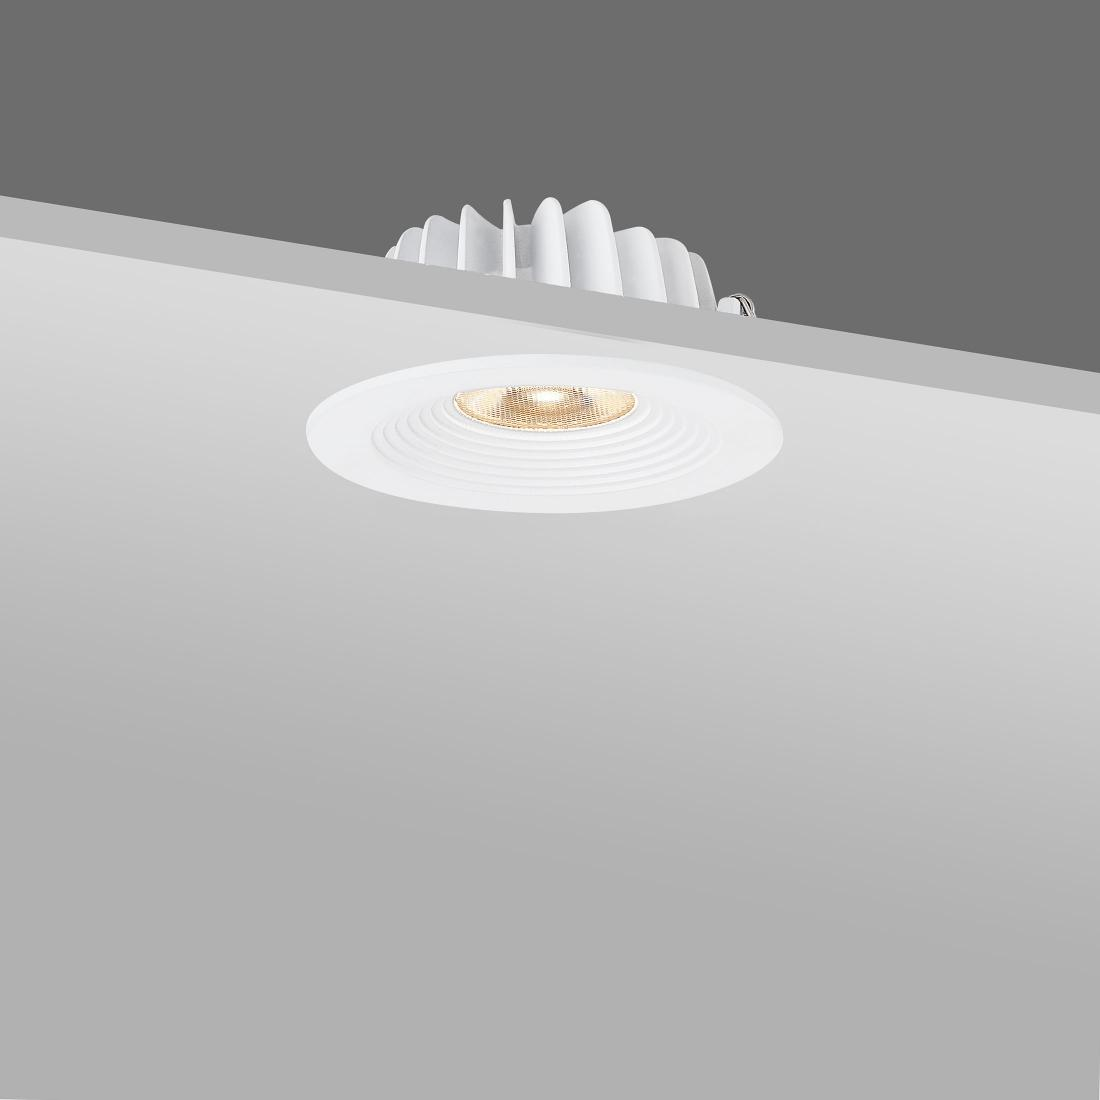 Fixed Recessed Spot light